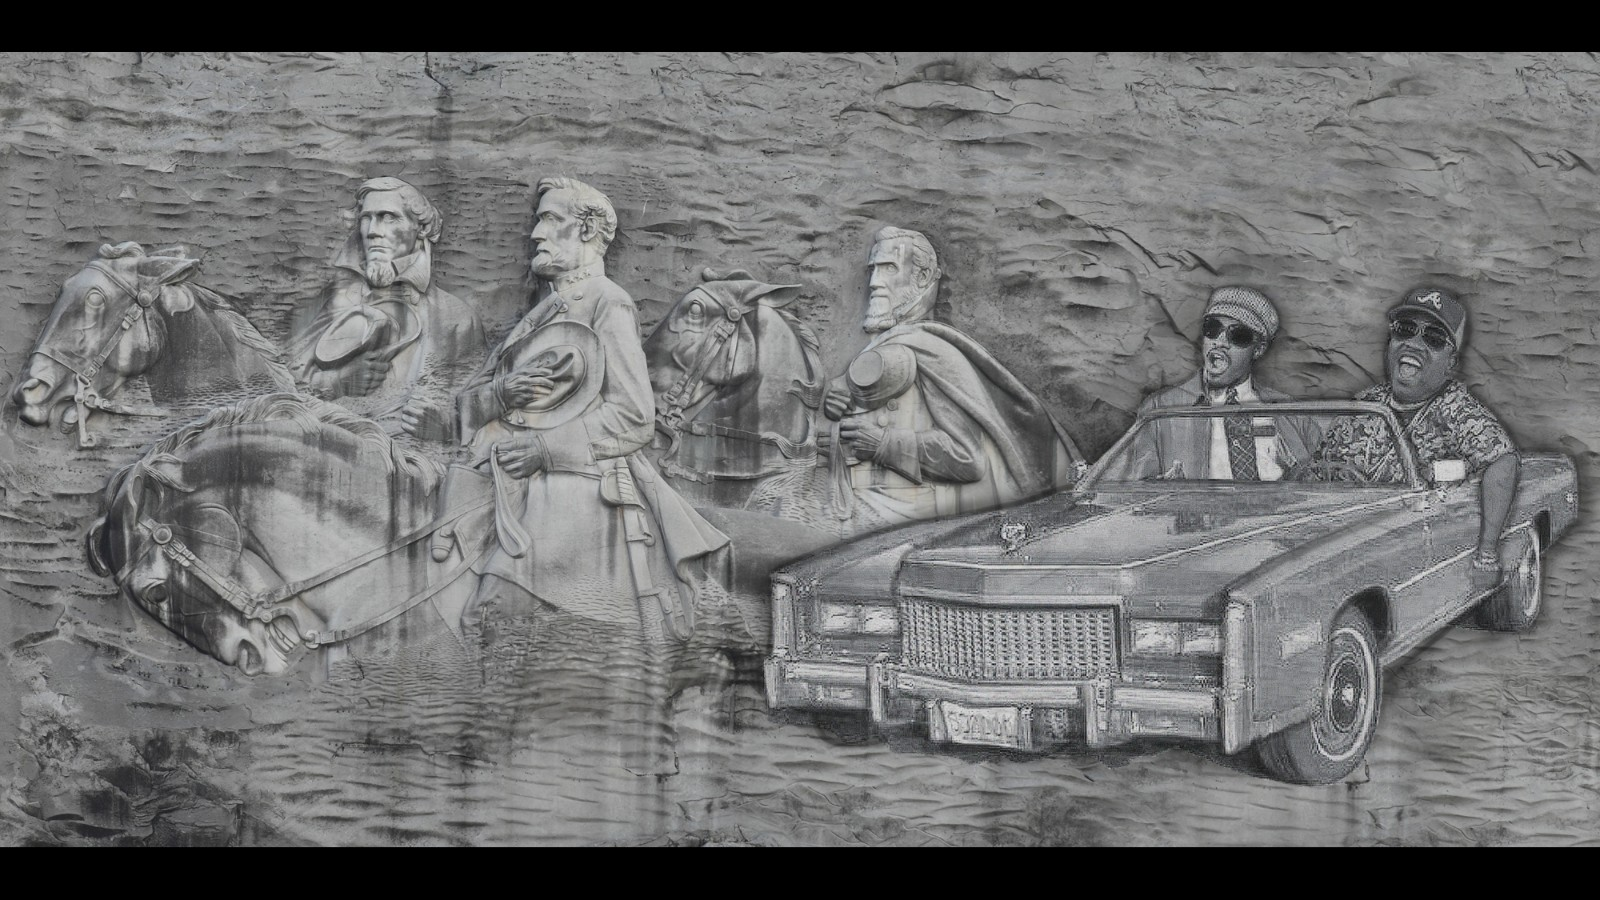 Abrams calls for removal of confederate carvings on stone mountain